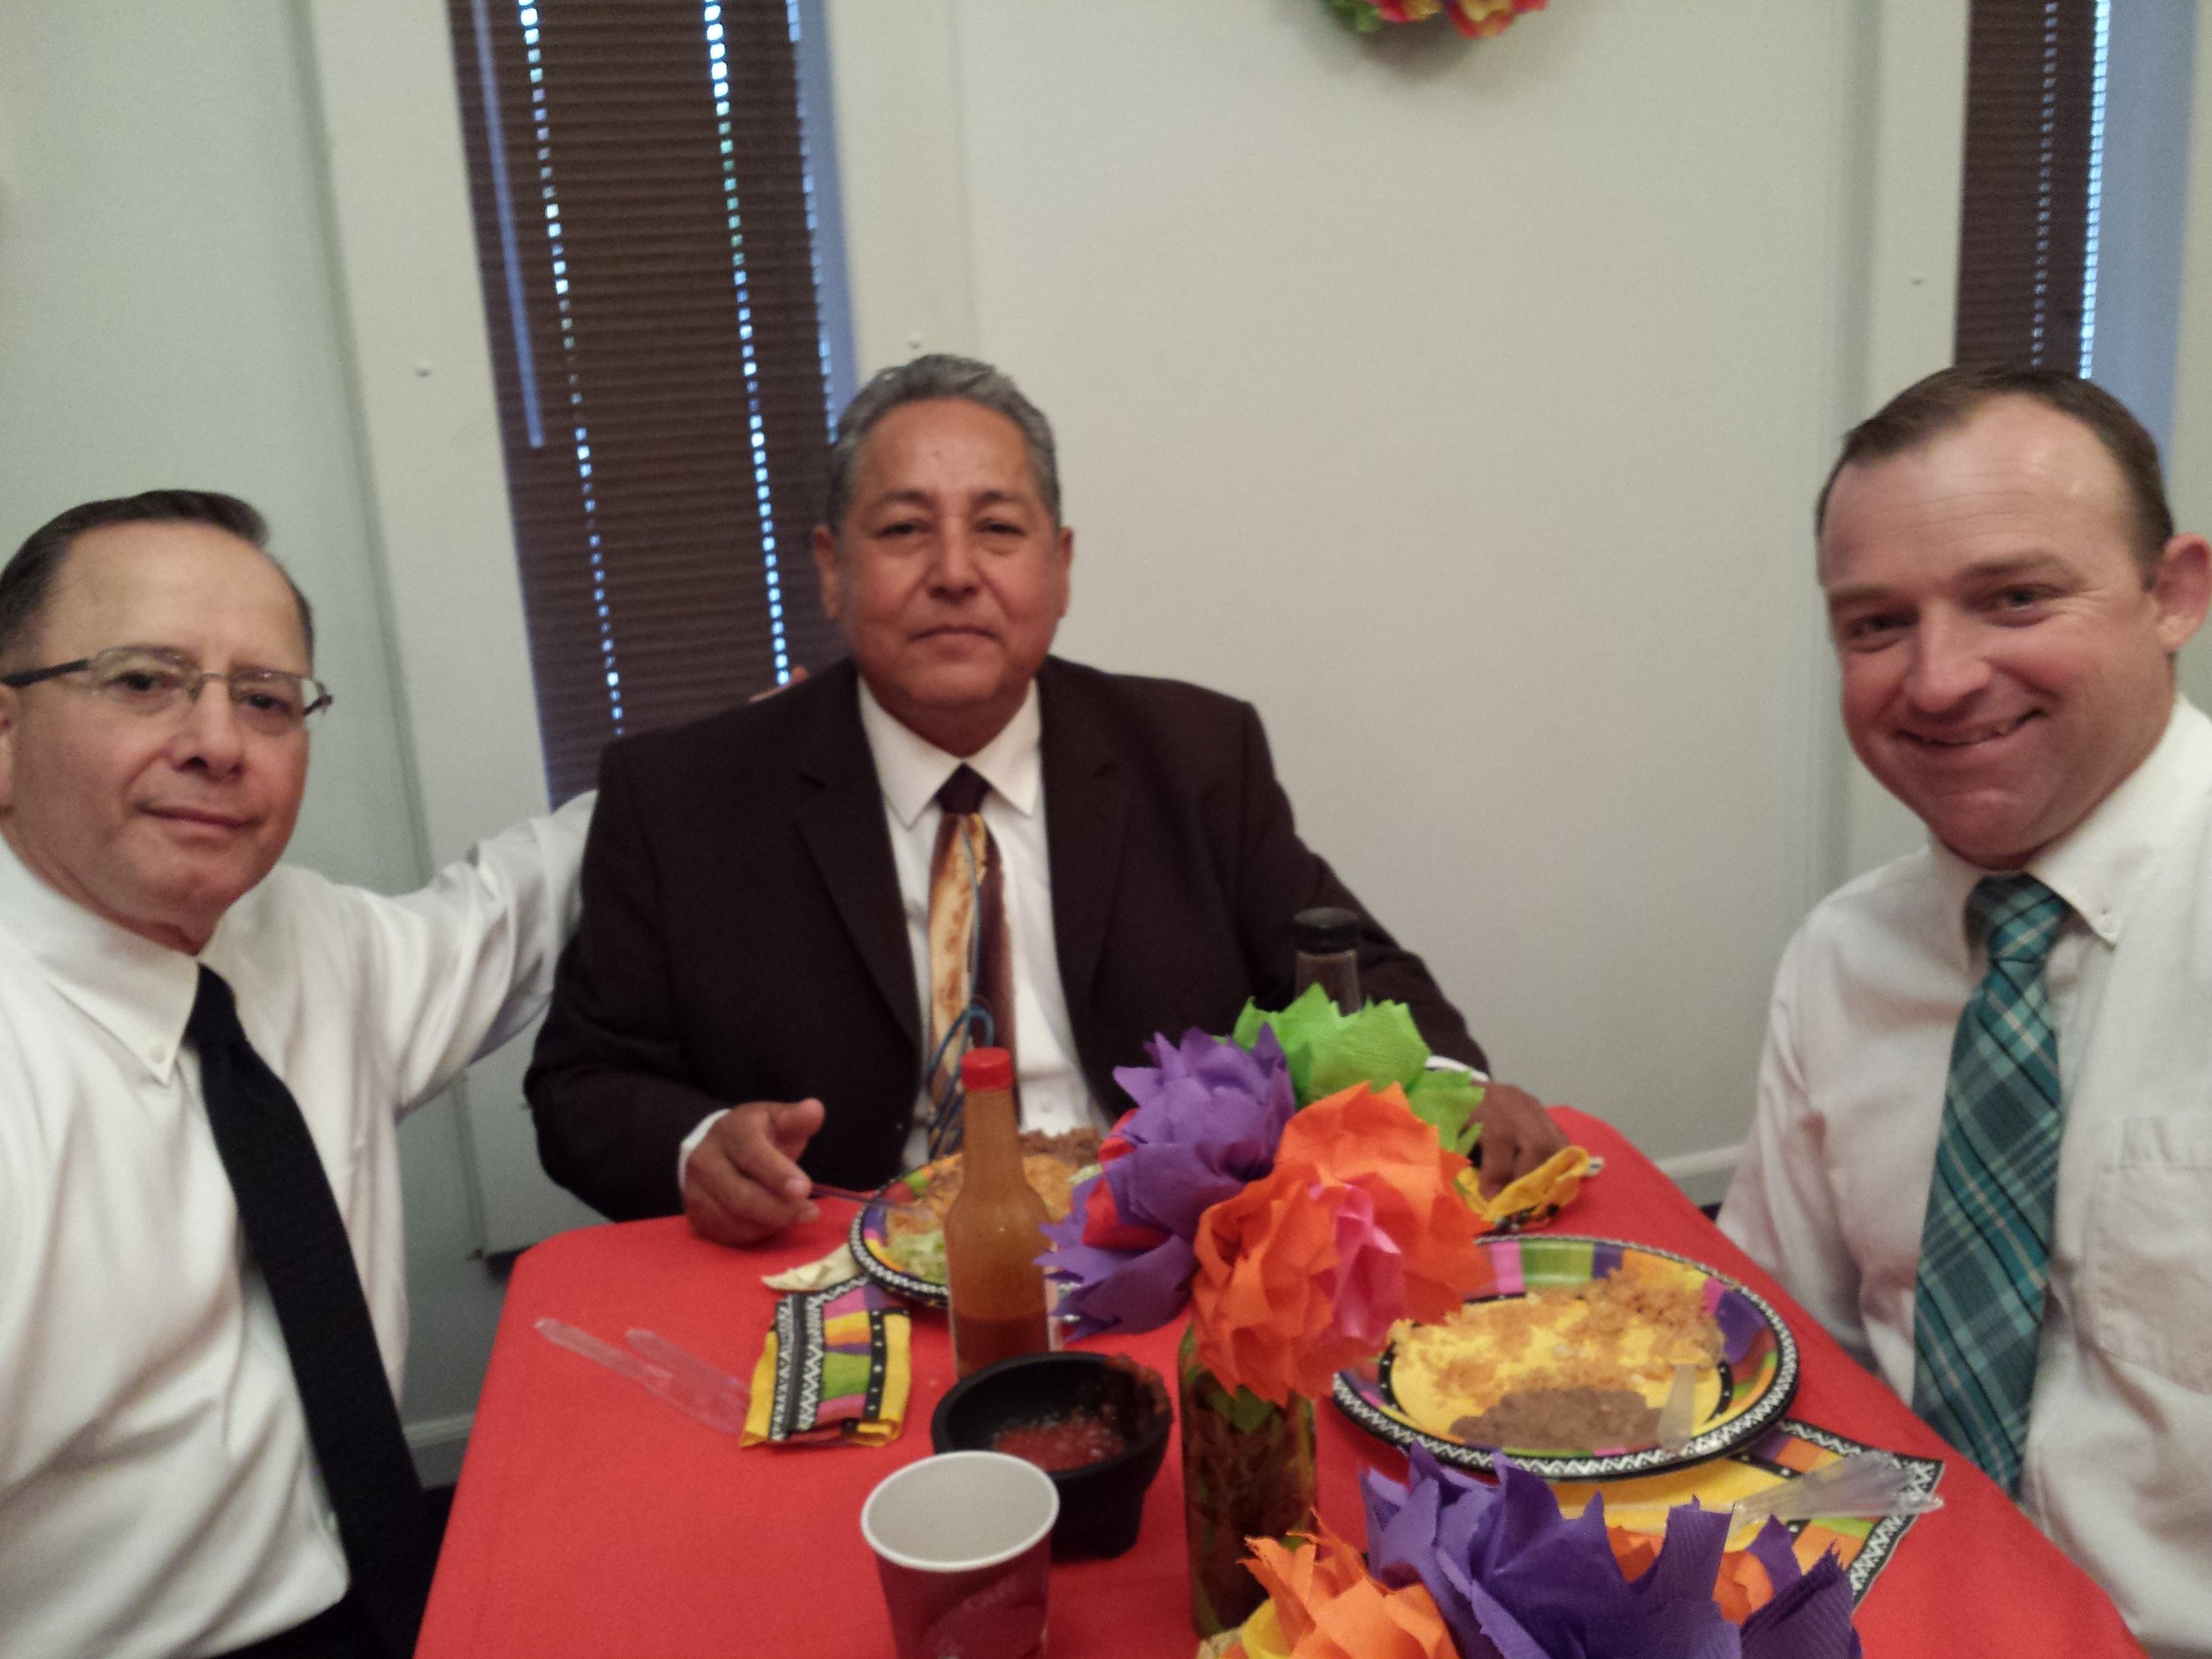 Bro. Garcia, Bro. Nevarez, and Bro. Middleton